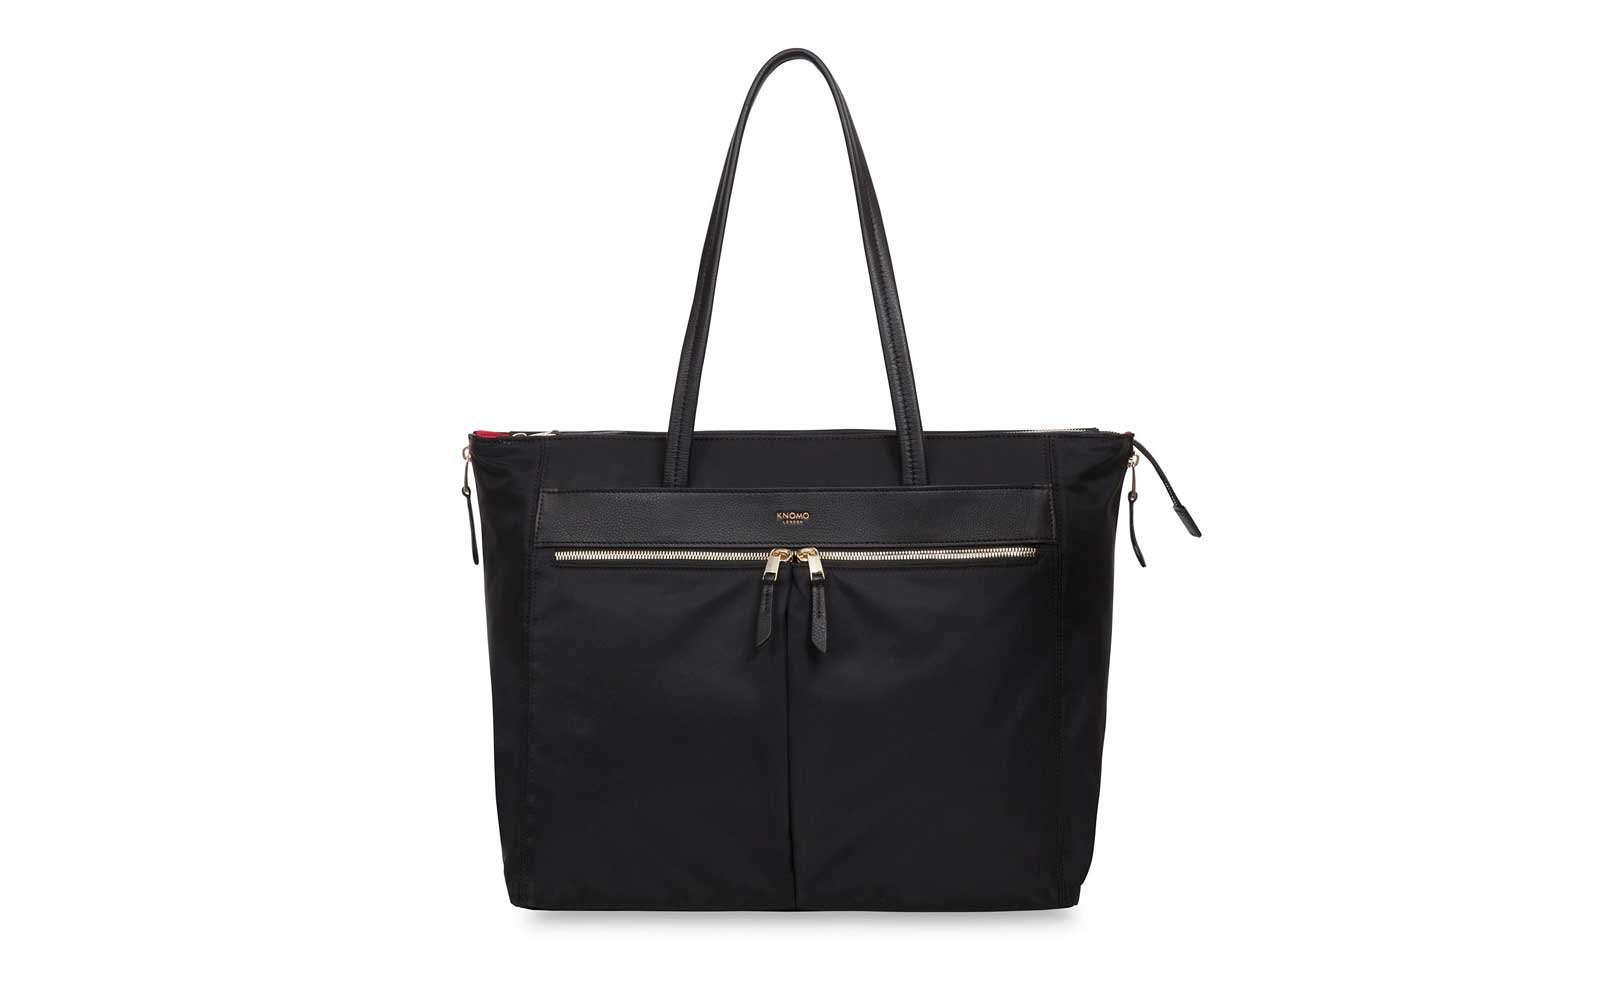 7b4b41d7ac The Laptop Lugger  Knomo Grosvenor Place Expandable Laptop Tote Bag. Knomo  nylon shoulder bags